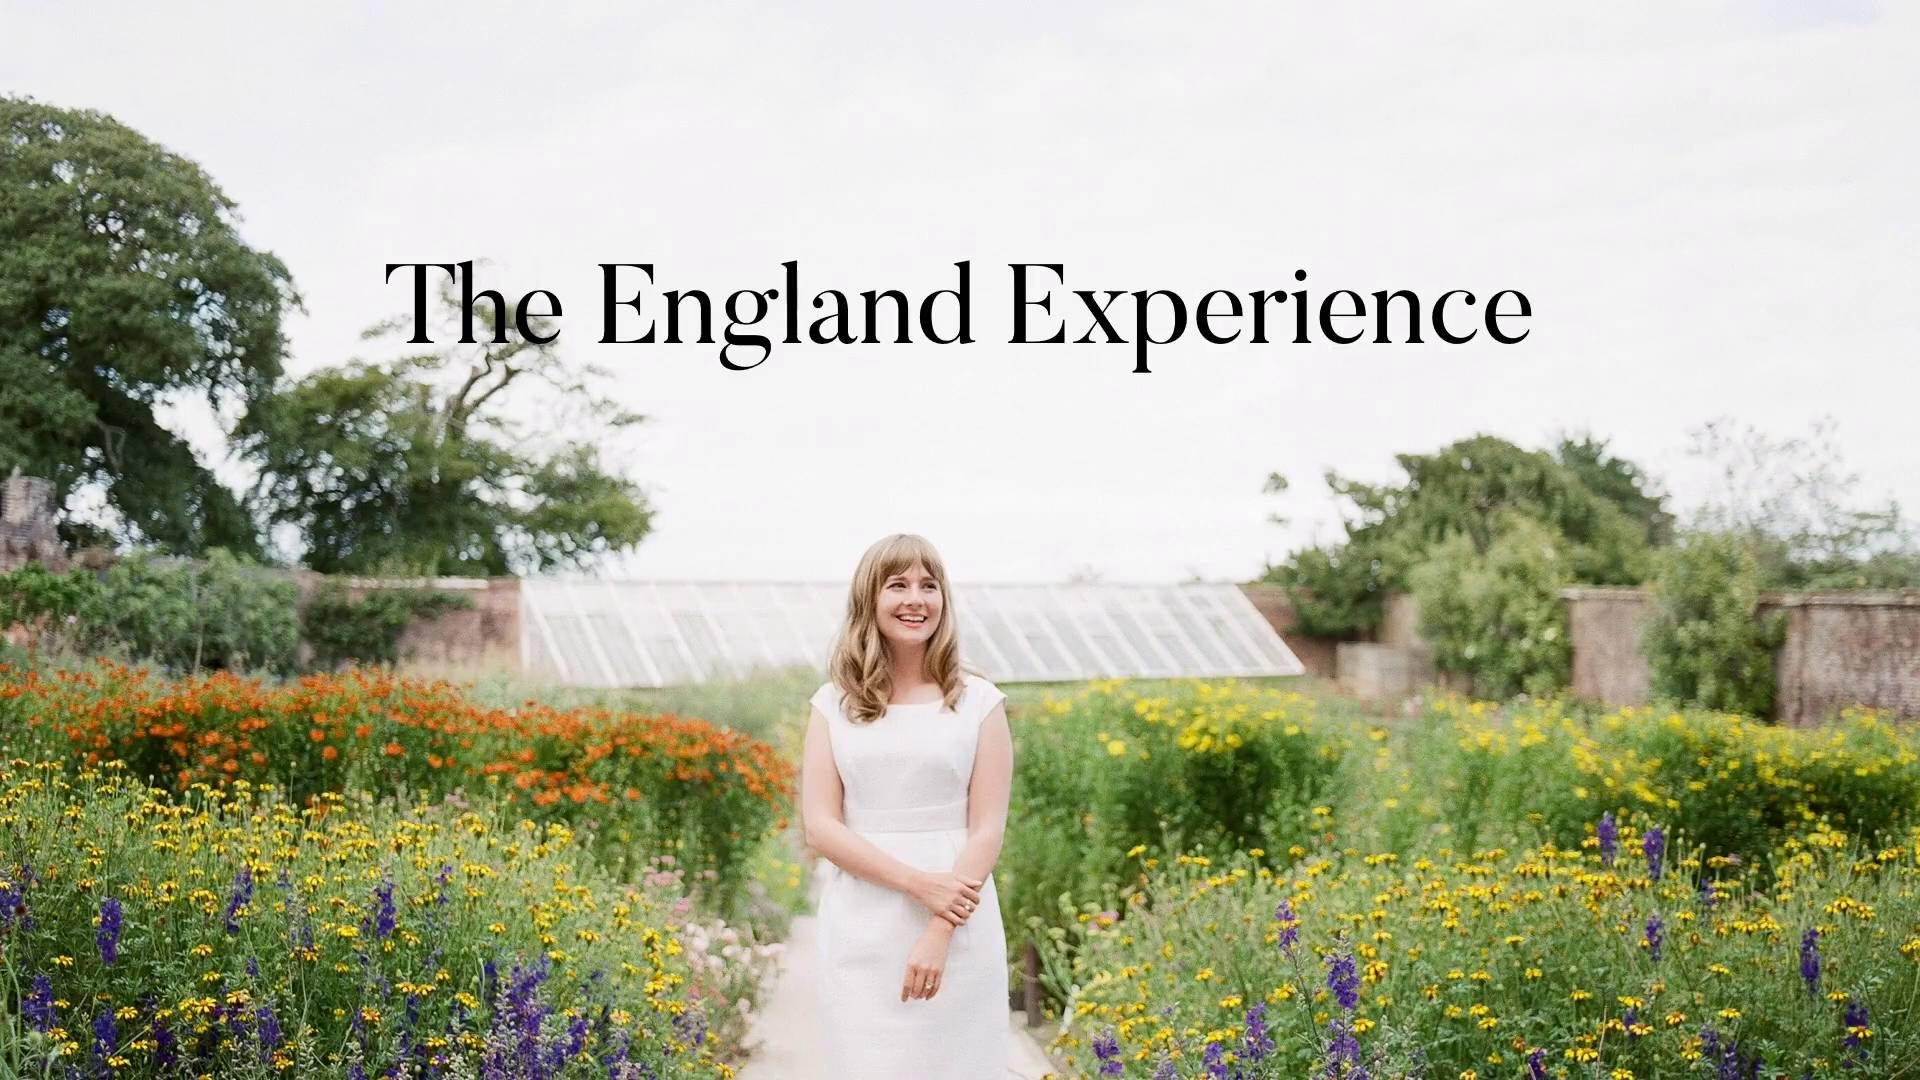 Free Video Series - Join Kelly for free on a digital England Experience. In this four-part series you'll learn about using the principles of design, plant trials, expert gardening techniques, wiring flowers, and using negative space in arrangements!